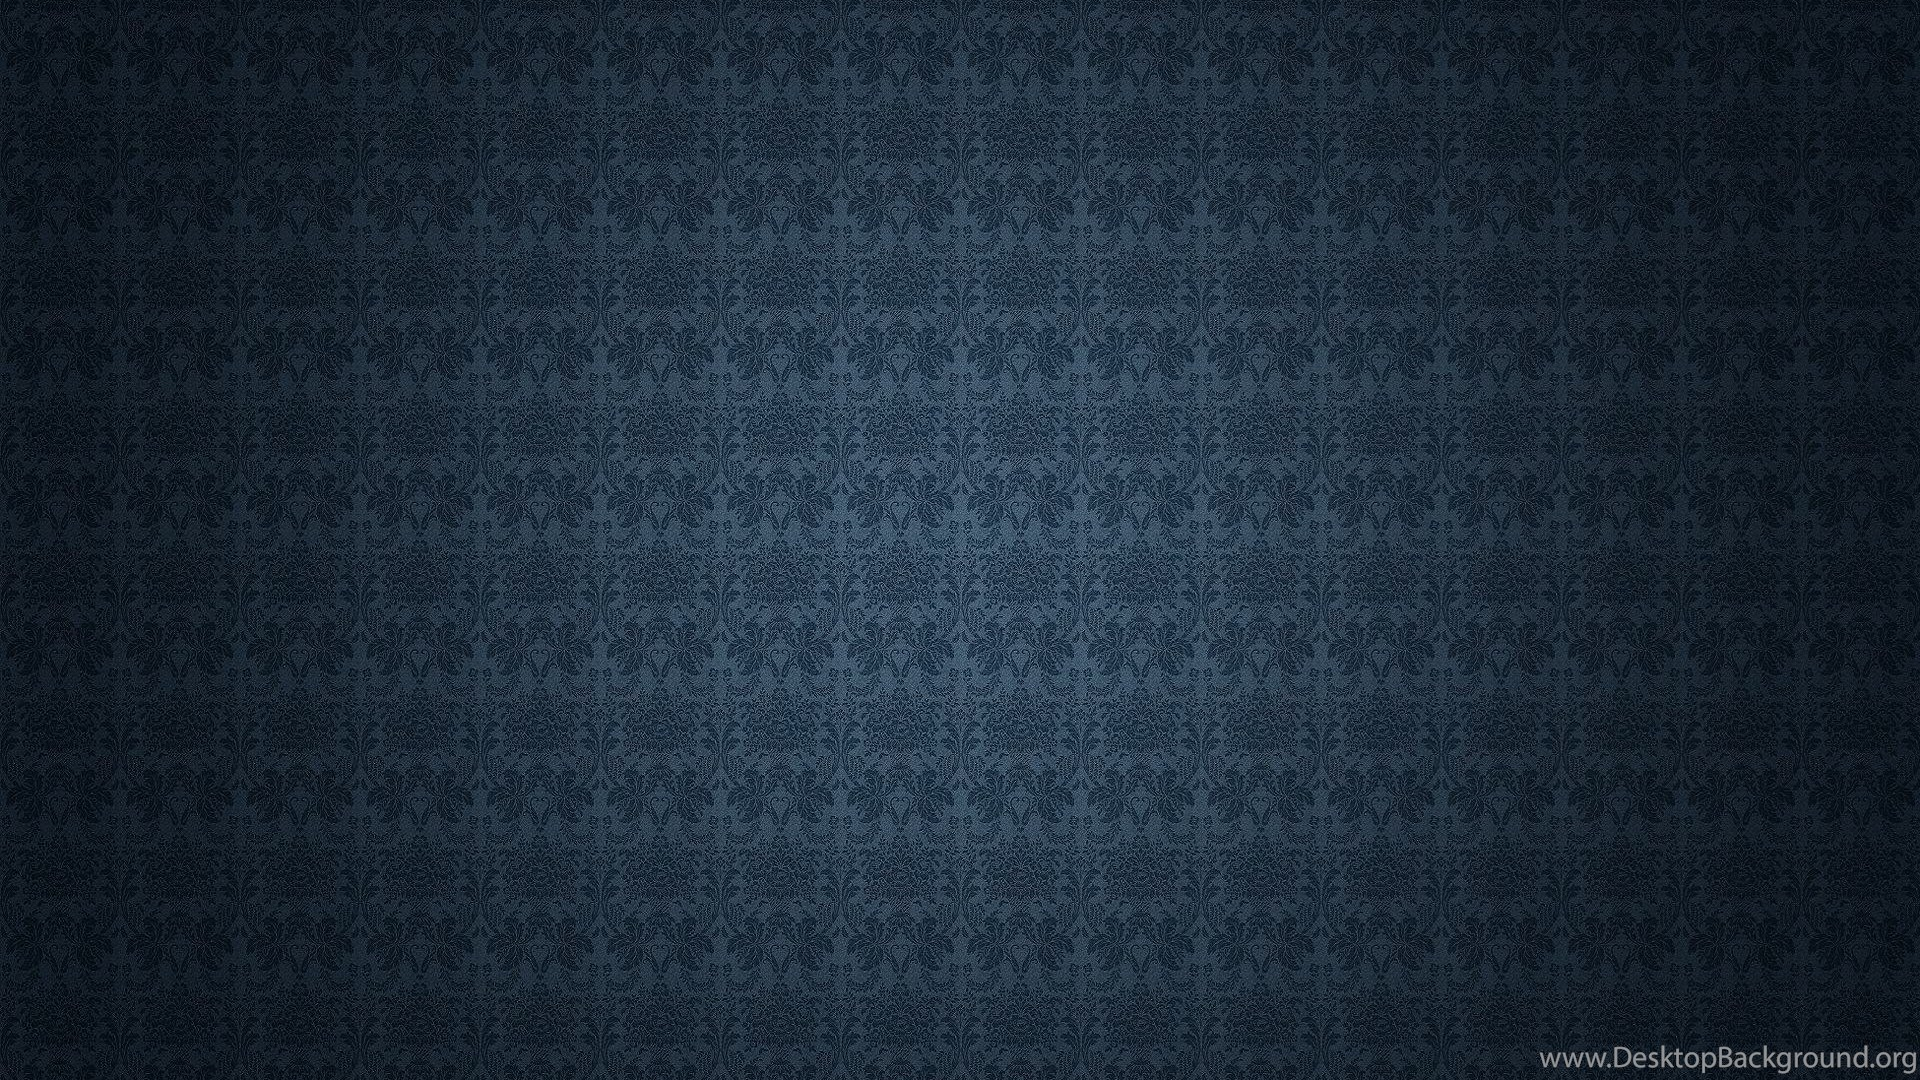 Download Cool Textured Backgrounds 6927 1920x1200 Px High ...